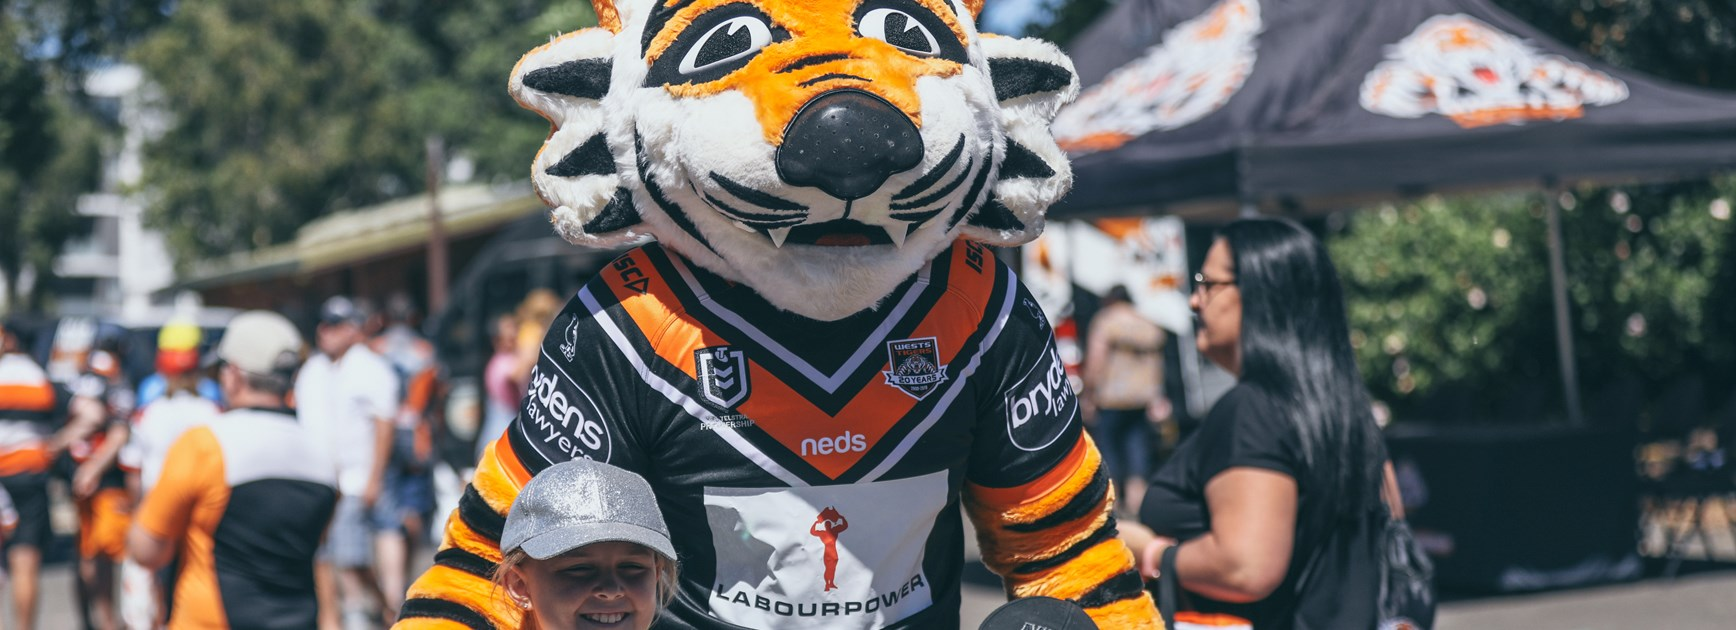 Labourpower join Wests Tigers as Mascot Partner